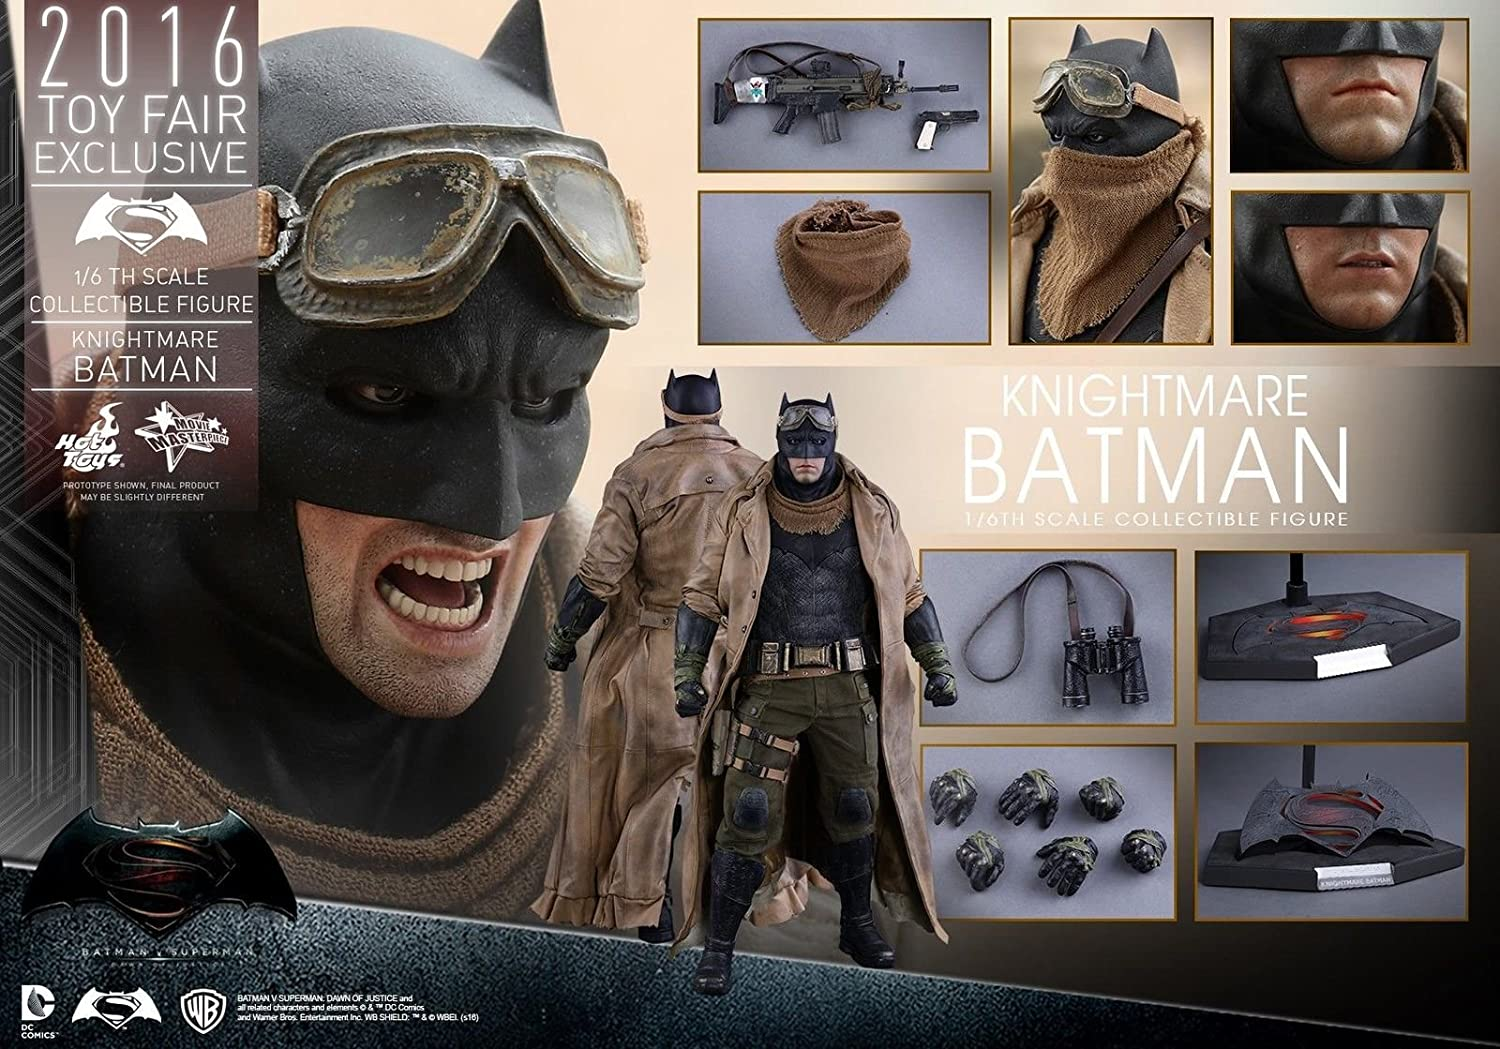 HOT TOYS 1 6 DC BATMAN V SUPERMAN MMS372 KNIGHTMARE BATMAN FIGURE 2016 FAIR EXCLUSIVE by Hot Toys